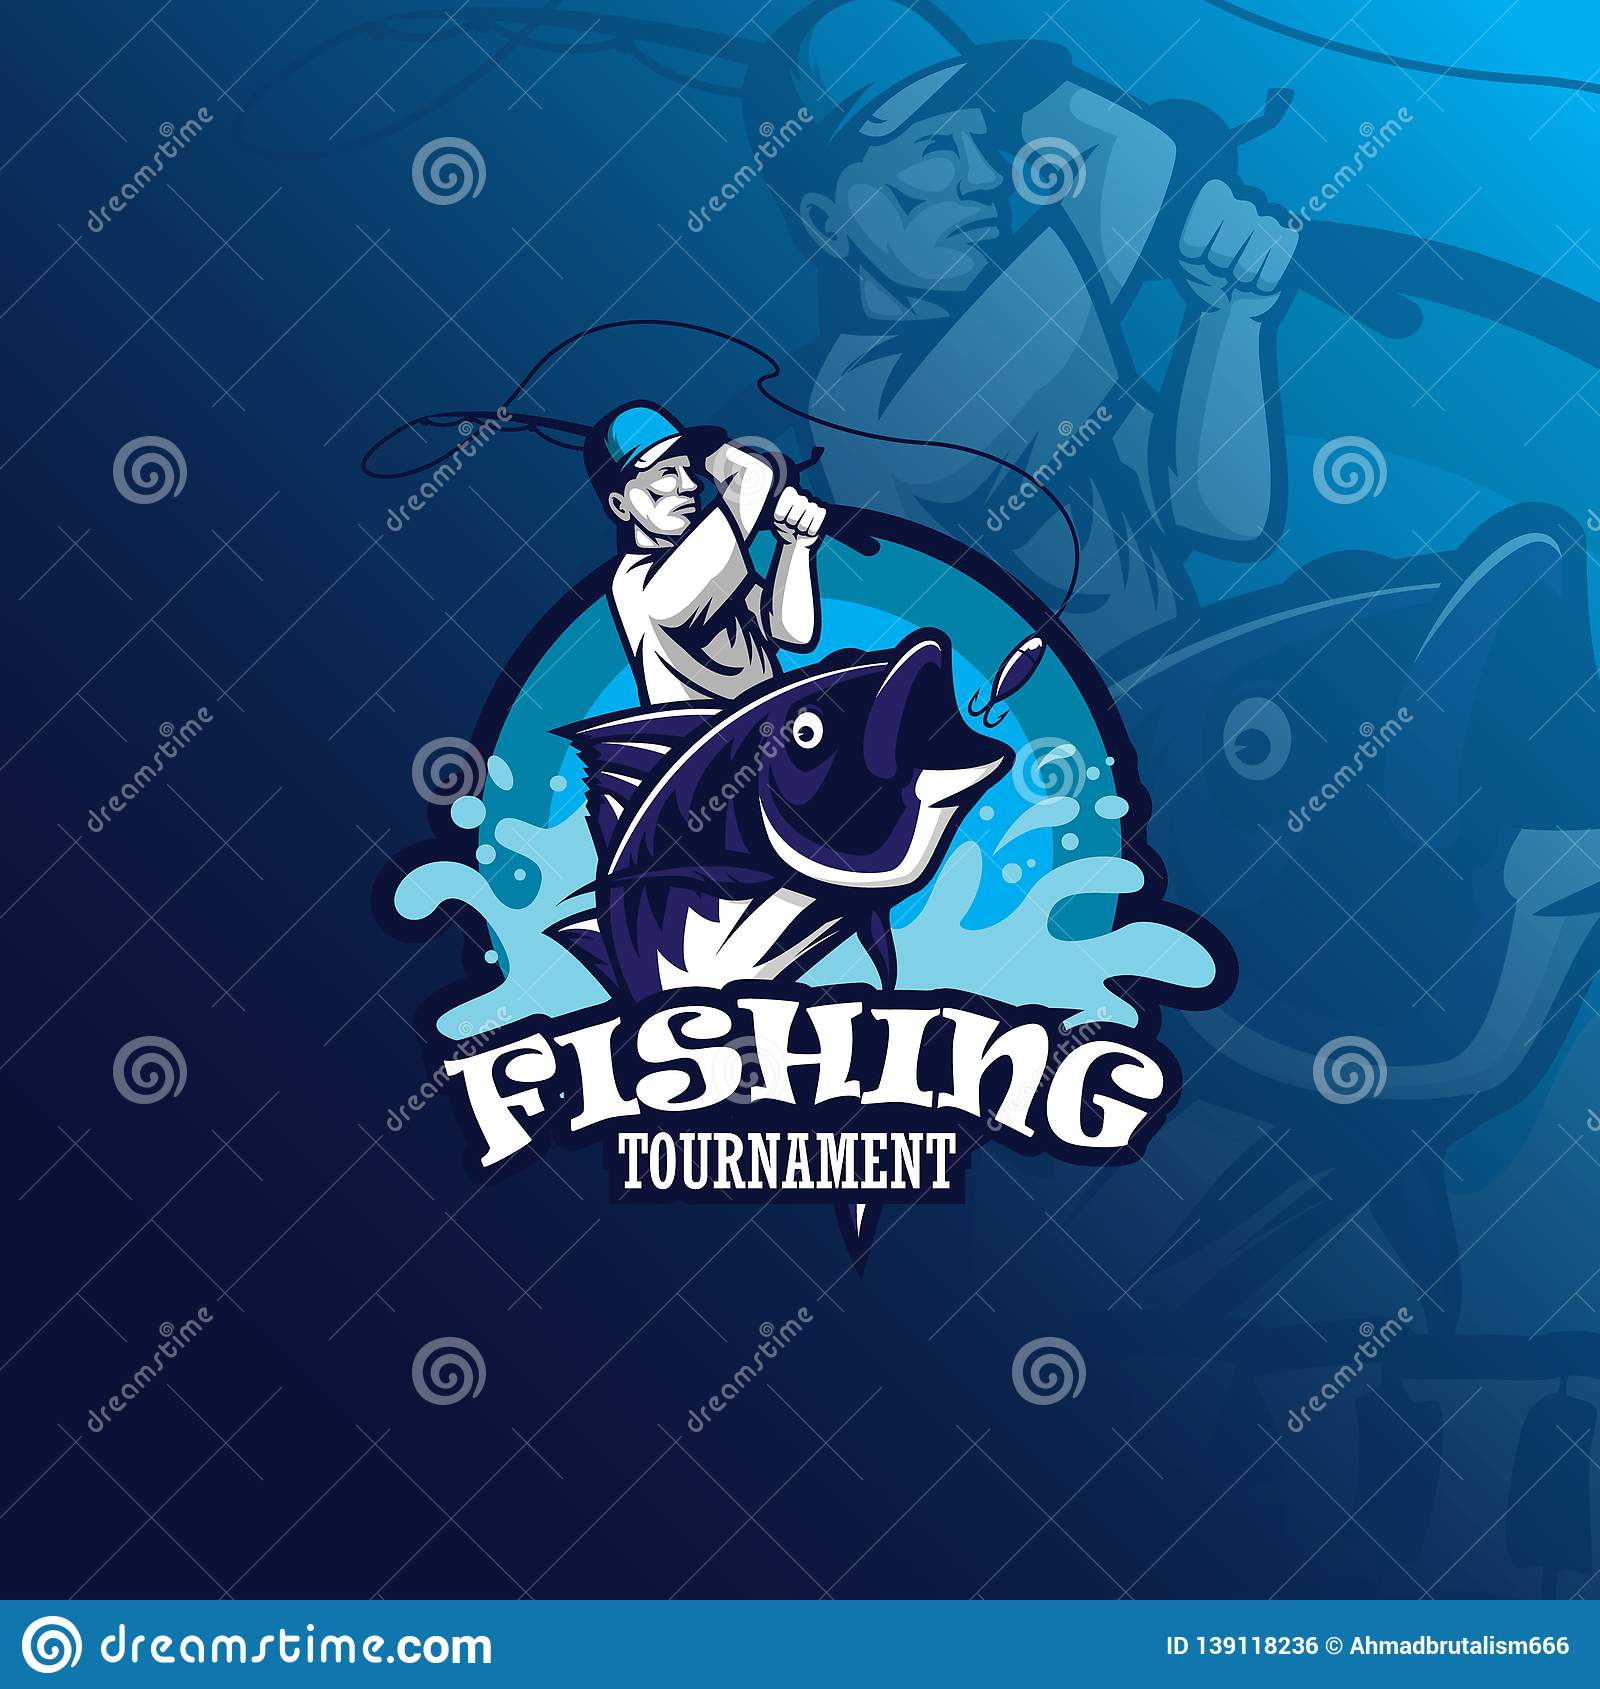 Fishing vector mascot logo design with modern illustration concept style for badge, emblem and tshirt printing. fishing